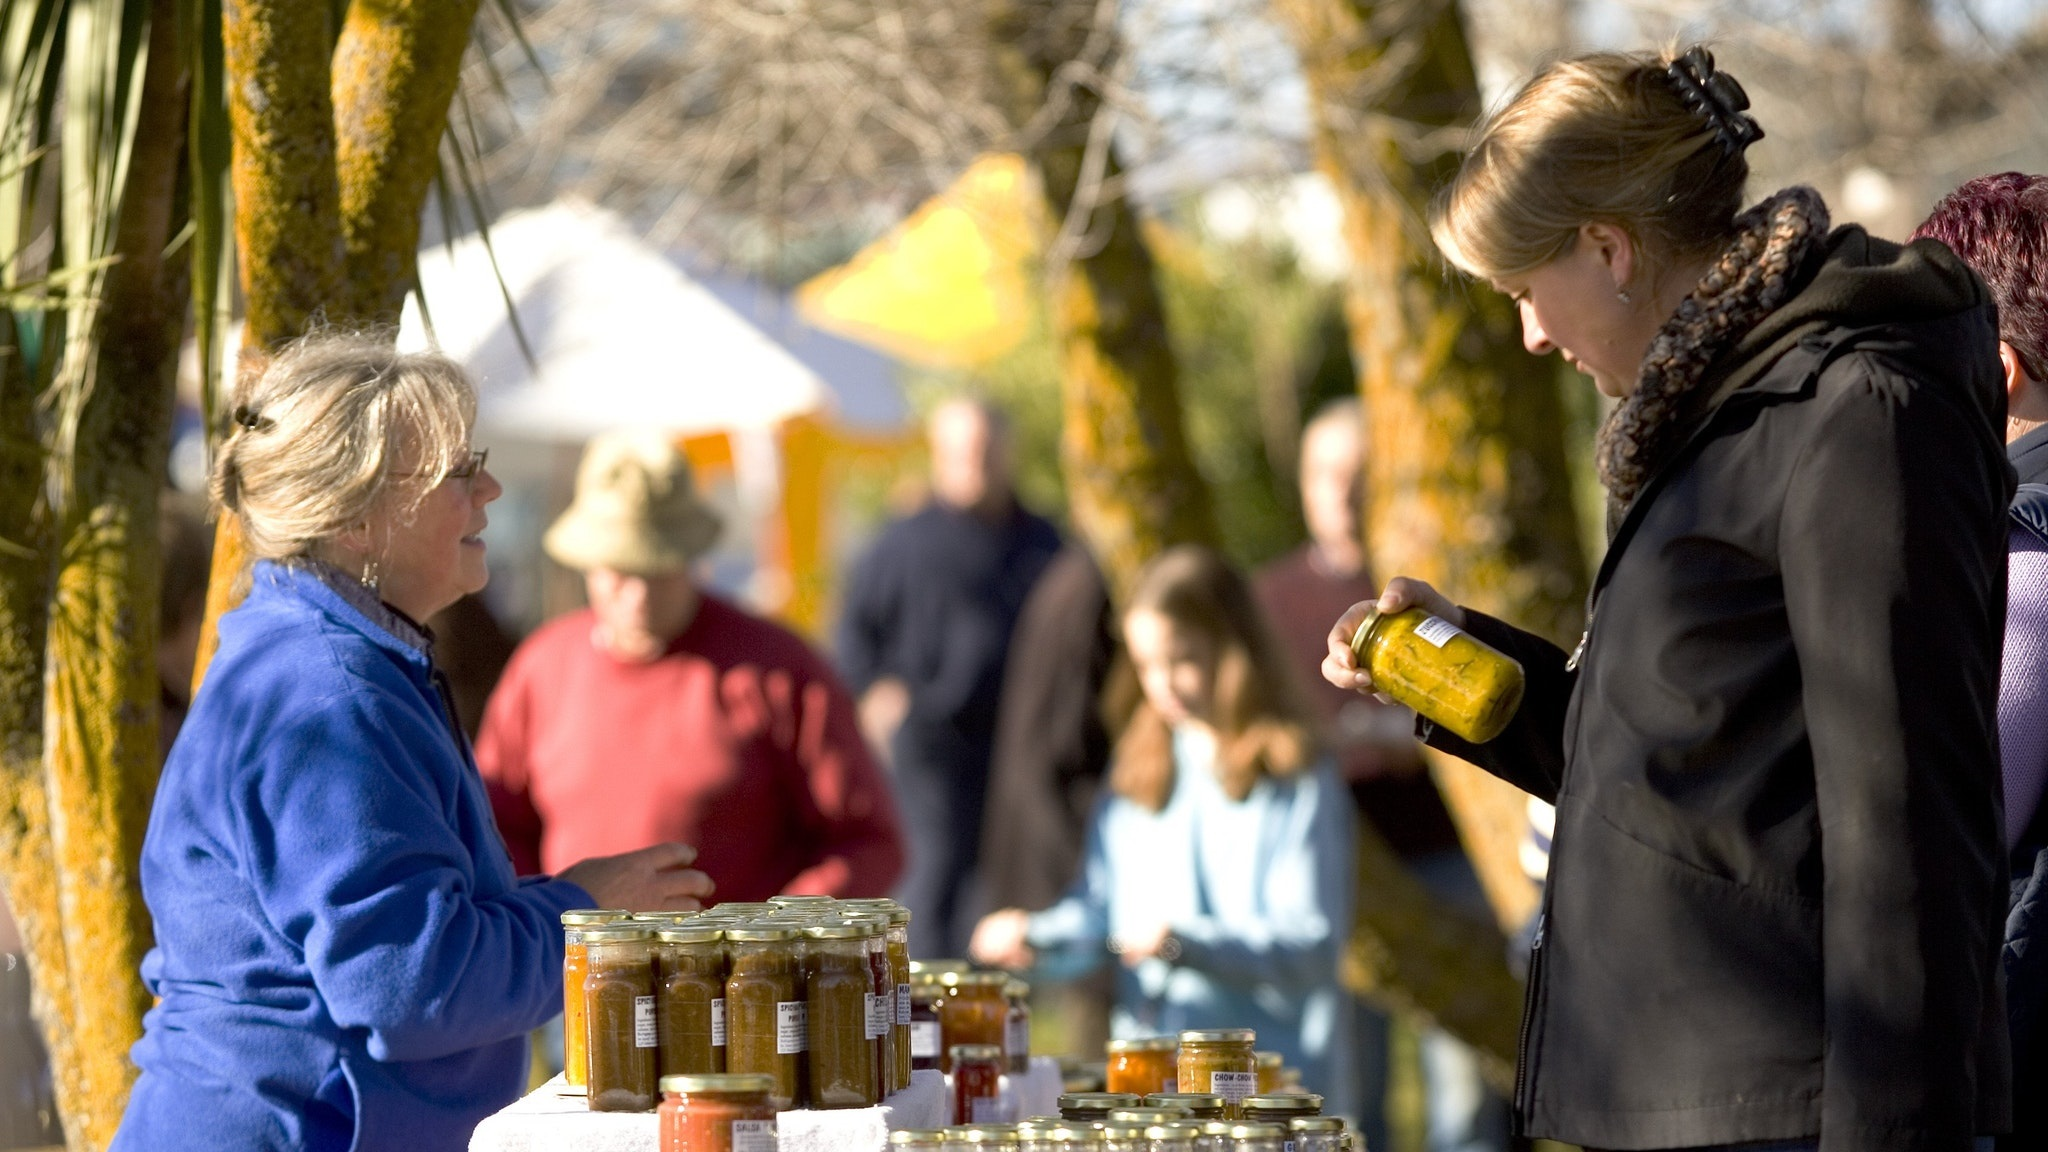 Things to do in Lancefield - Lancefield Markets